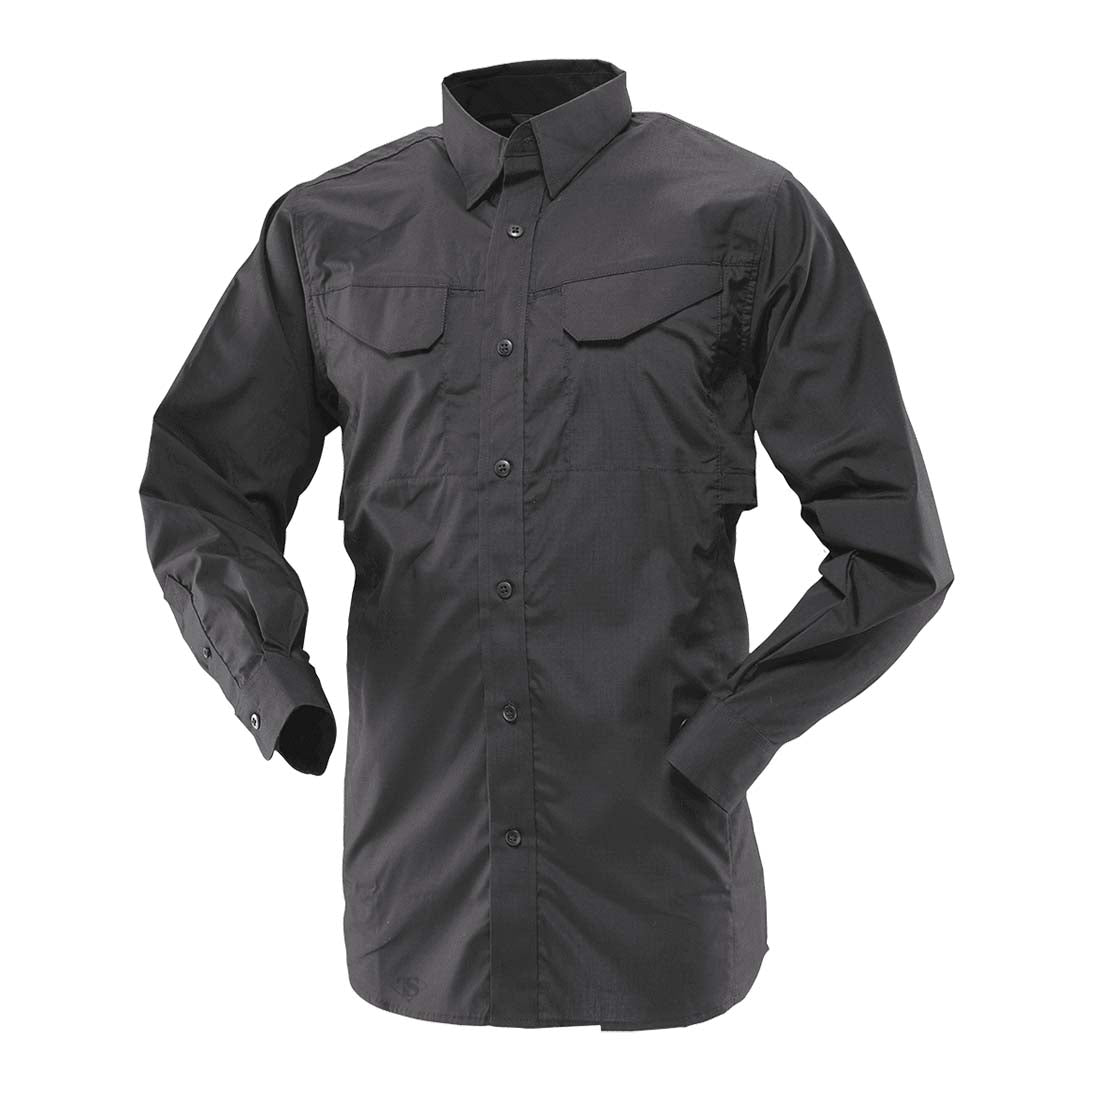 Tru-Spec 24/7 Series Men's Ultralight Long Sleeve Field Shirt